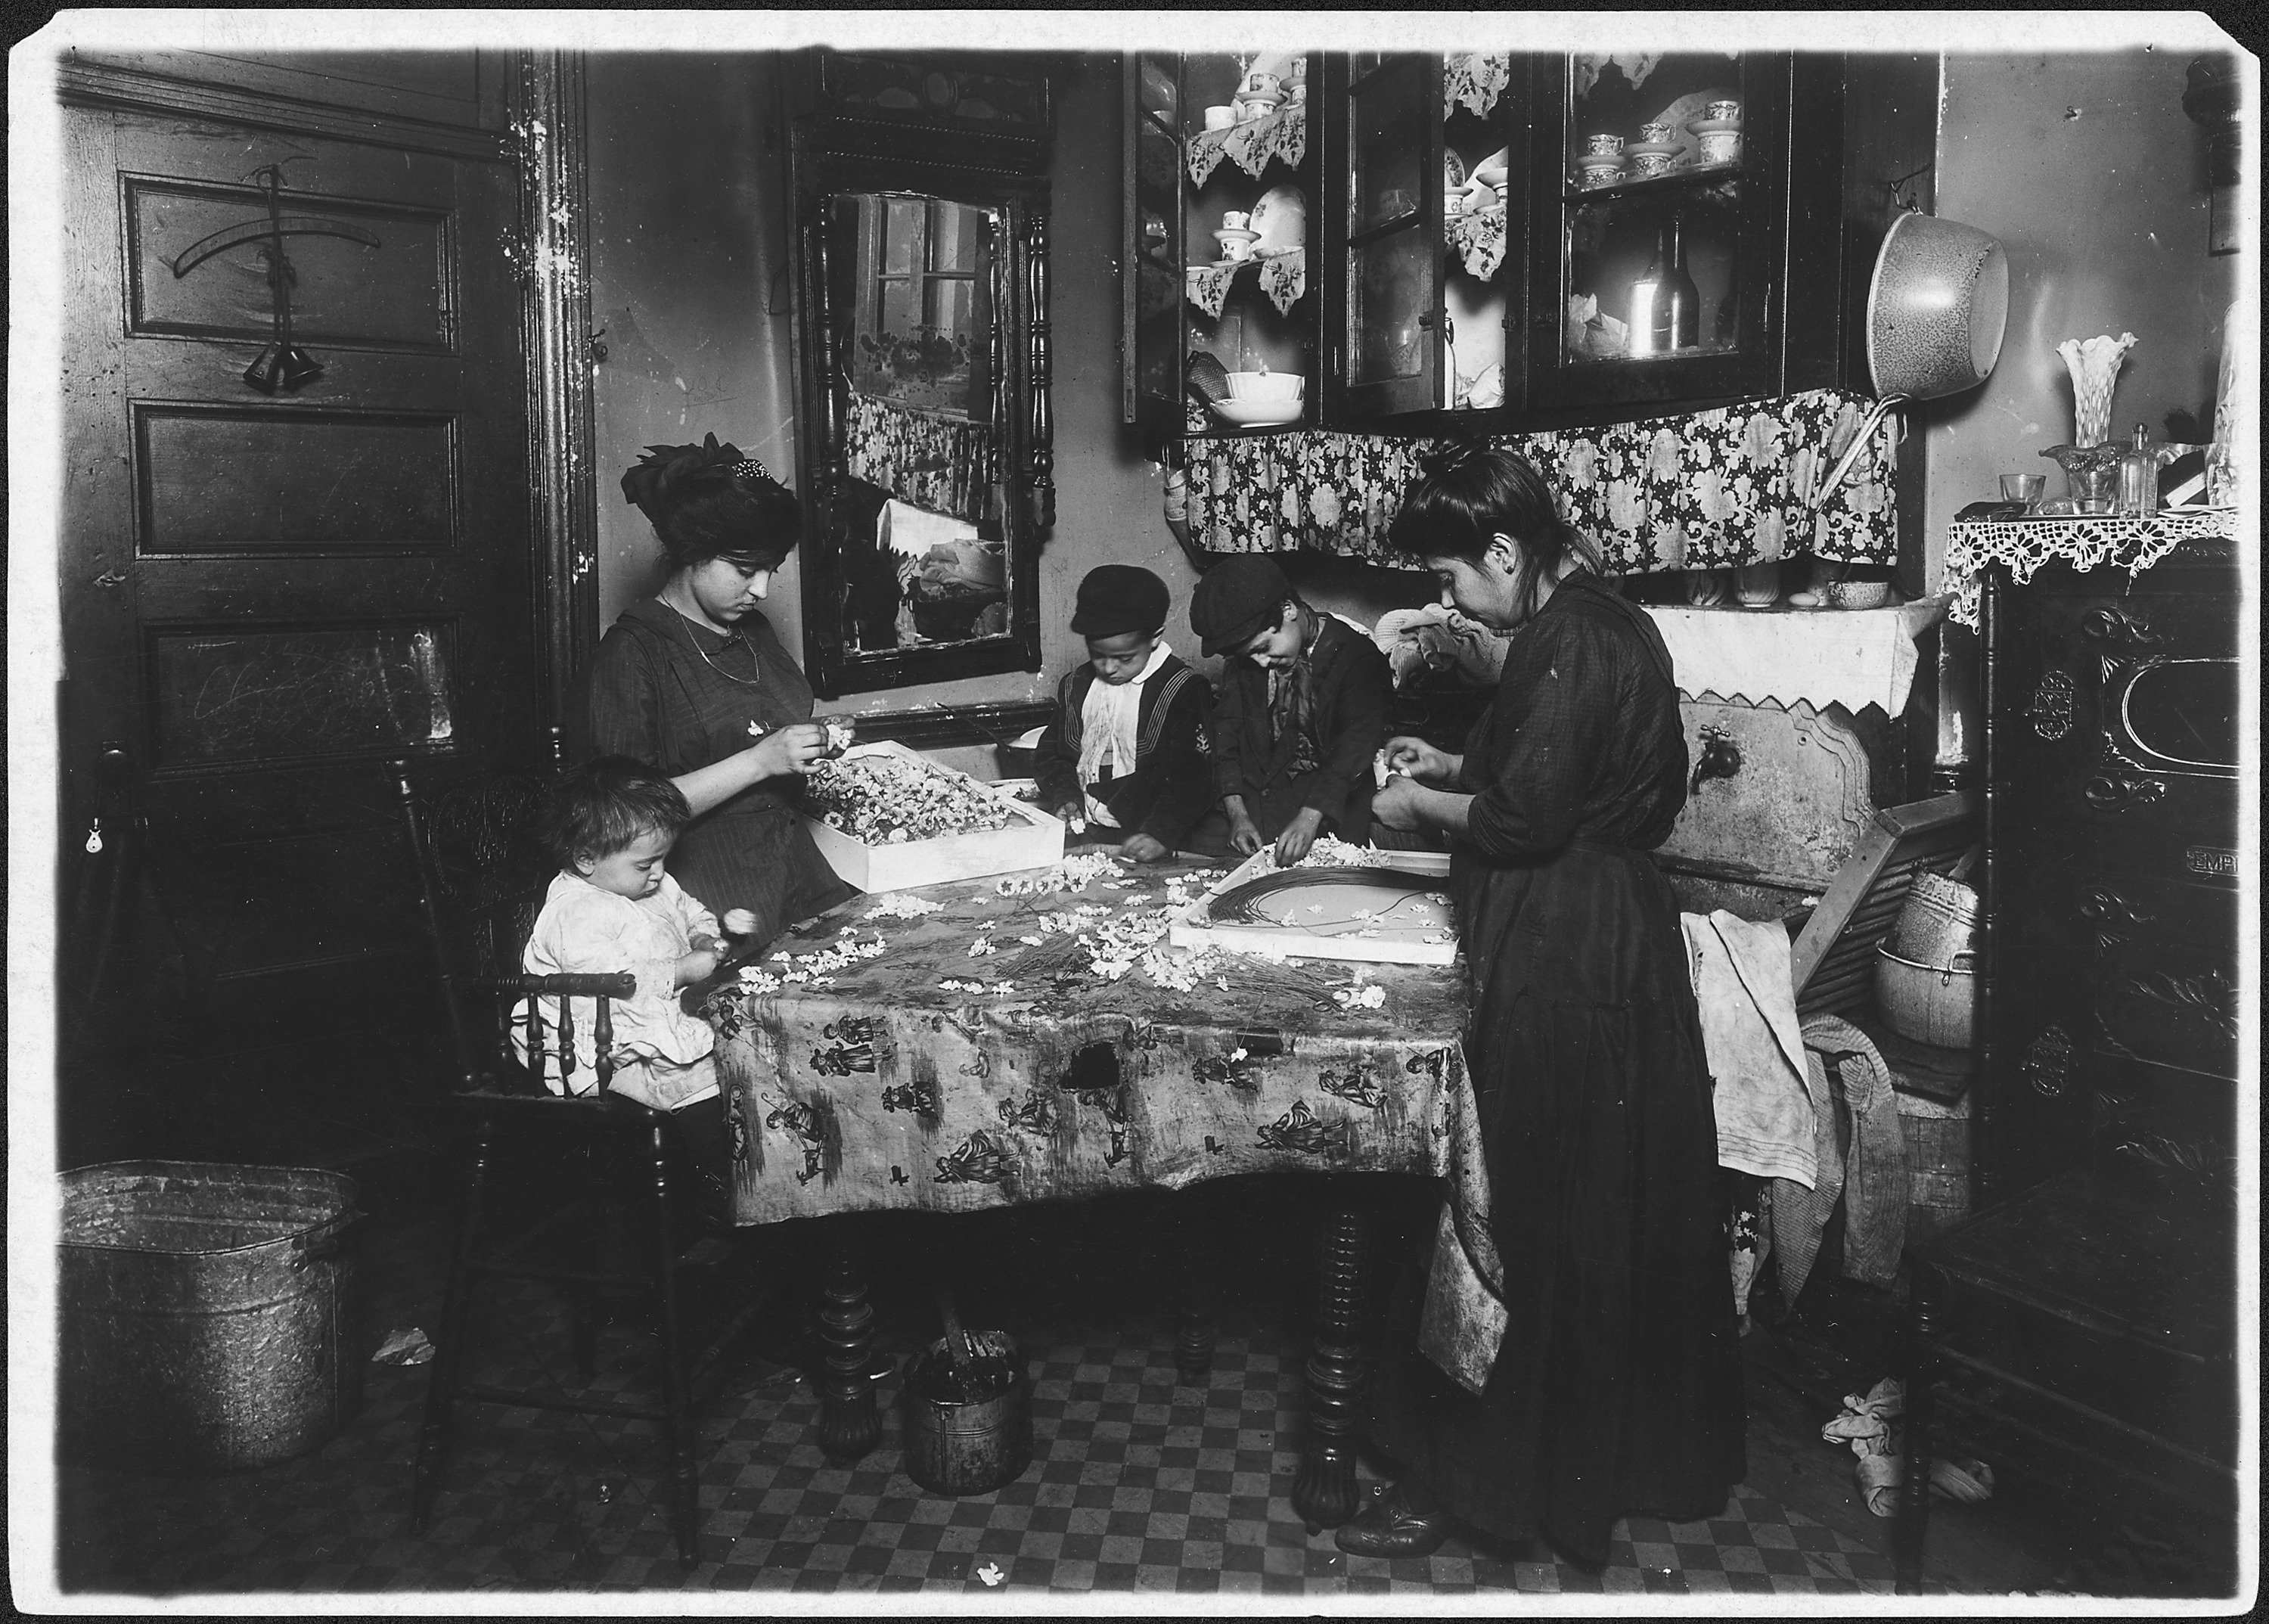 Family of Mrs. Motto making flowers in a dirty tenement. Josephine, 13 years, helps outside of school hours until 9... - NARA - 523495